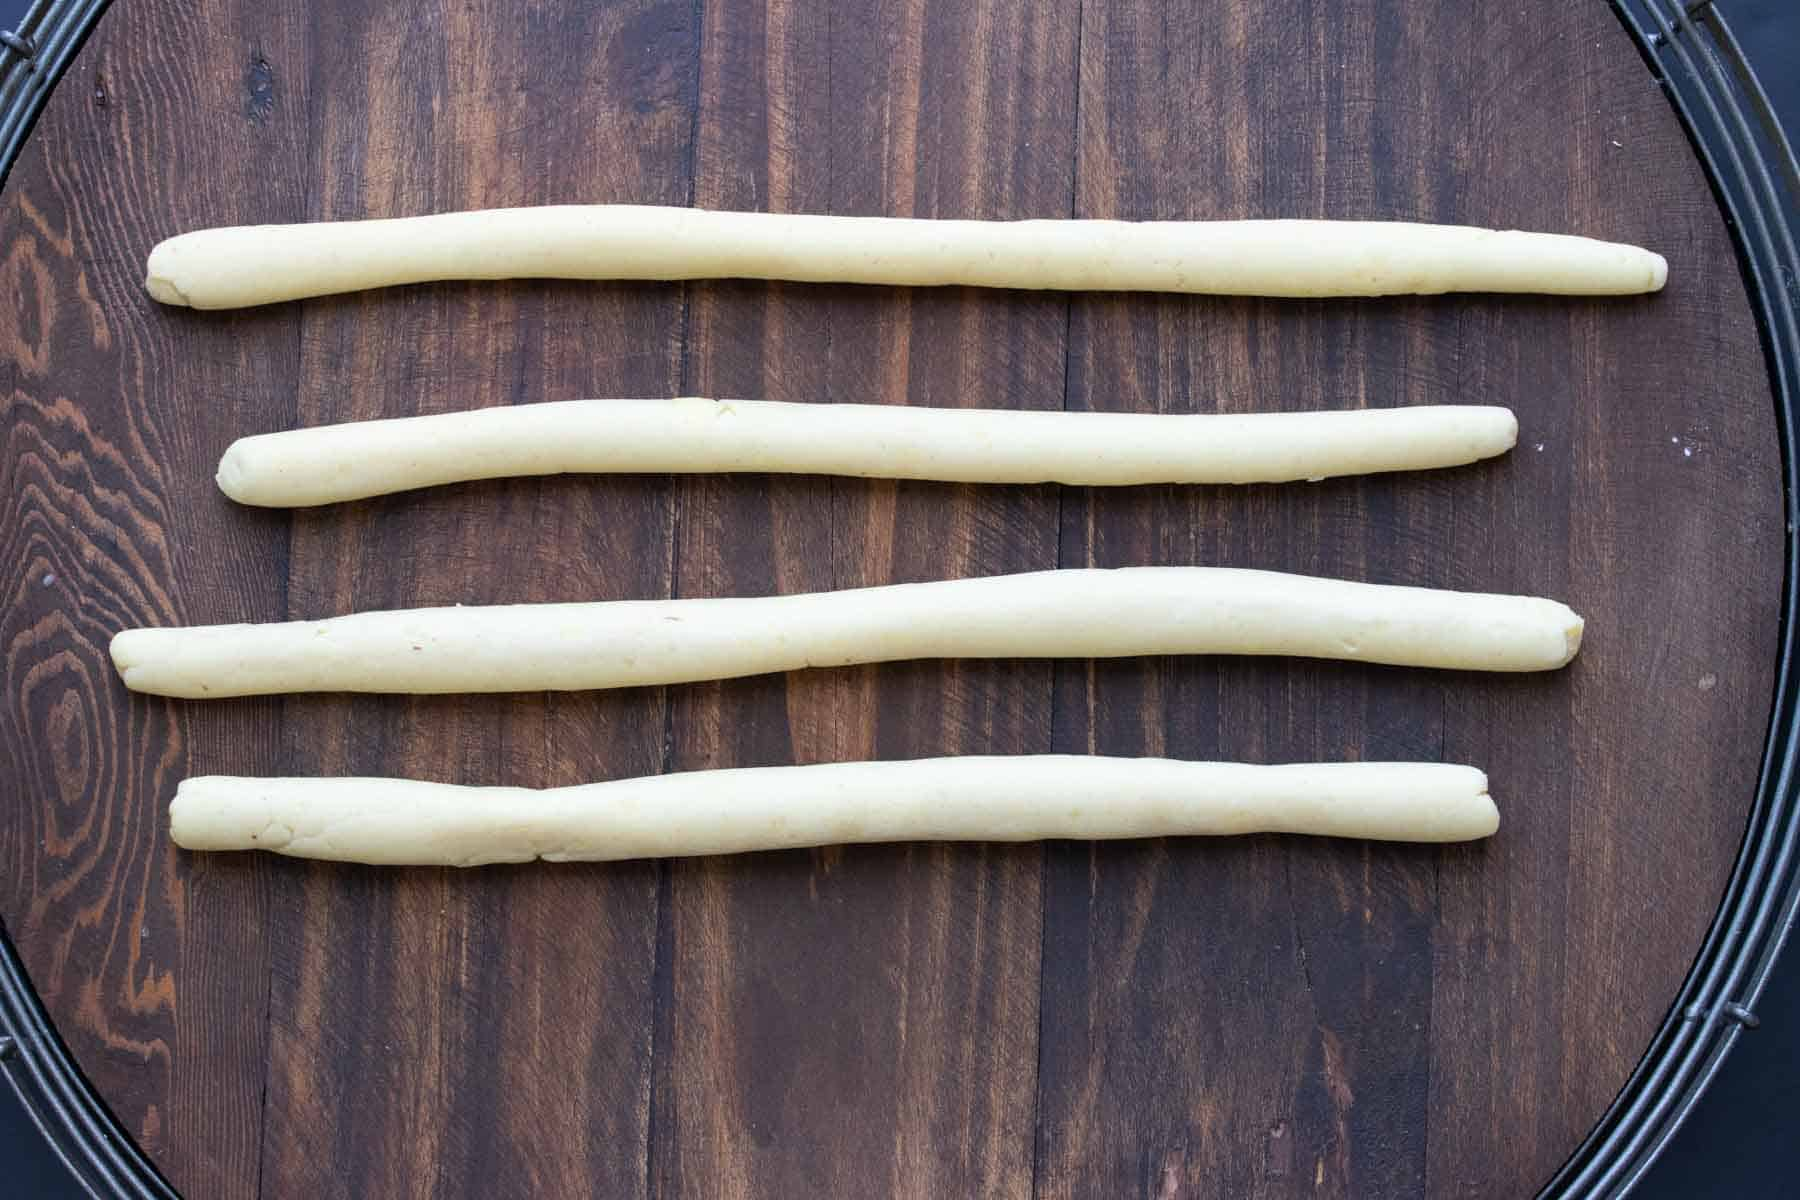 Four rolled out pieces of dough on a wooden surface